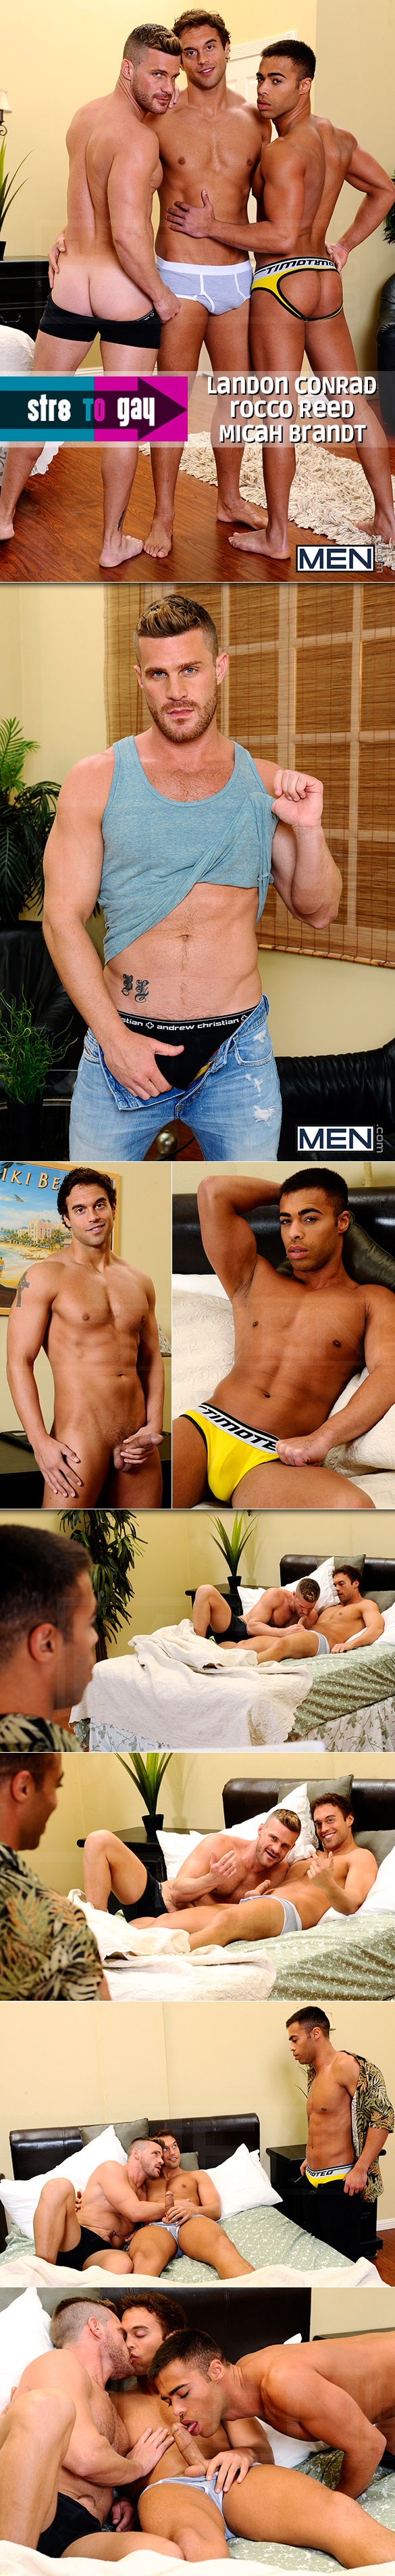 """Men.com: Rocco Reed, Landon Conrad and Micah Brandt's threesome in """"My Bride's Hot Brother: The Honeymoon"""""""